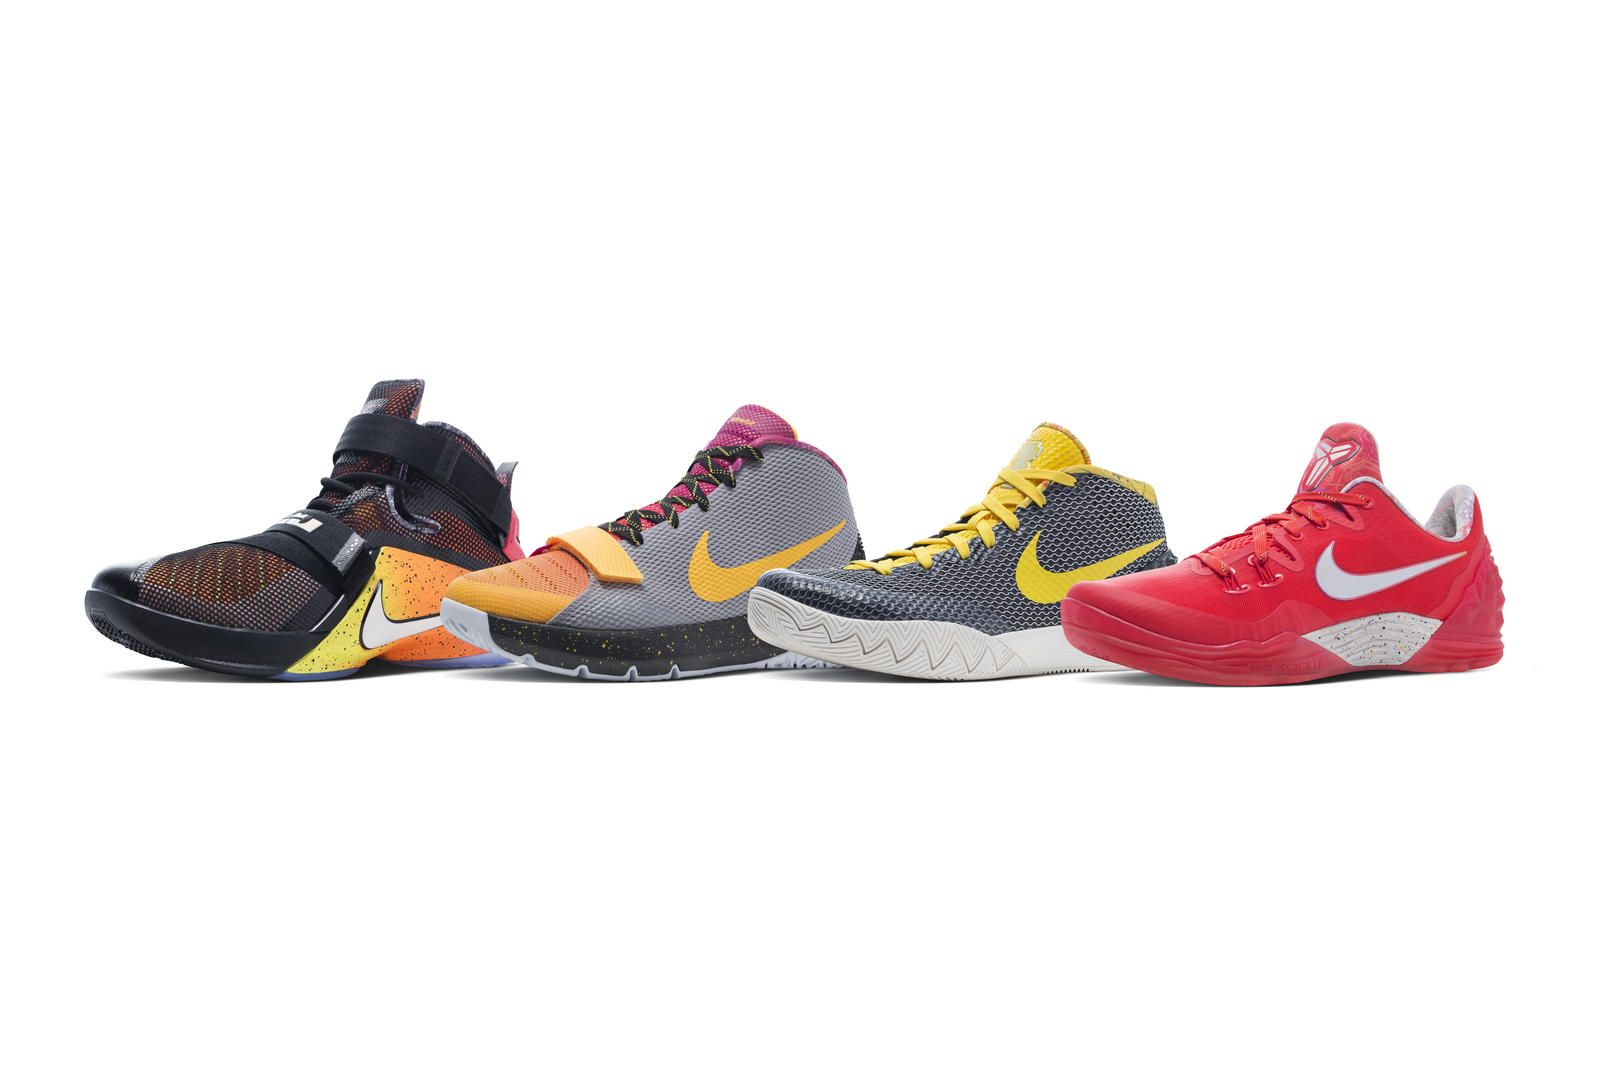 Lebron KD Kyrie Kobe / Nike News - Inside Access: Nike Fosters Basketball's  Growth and